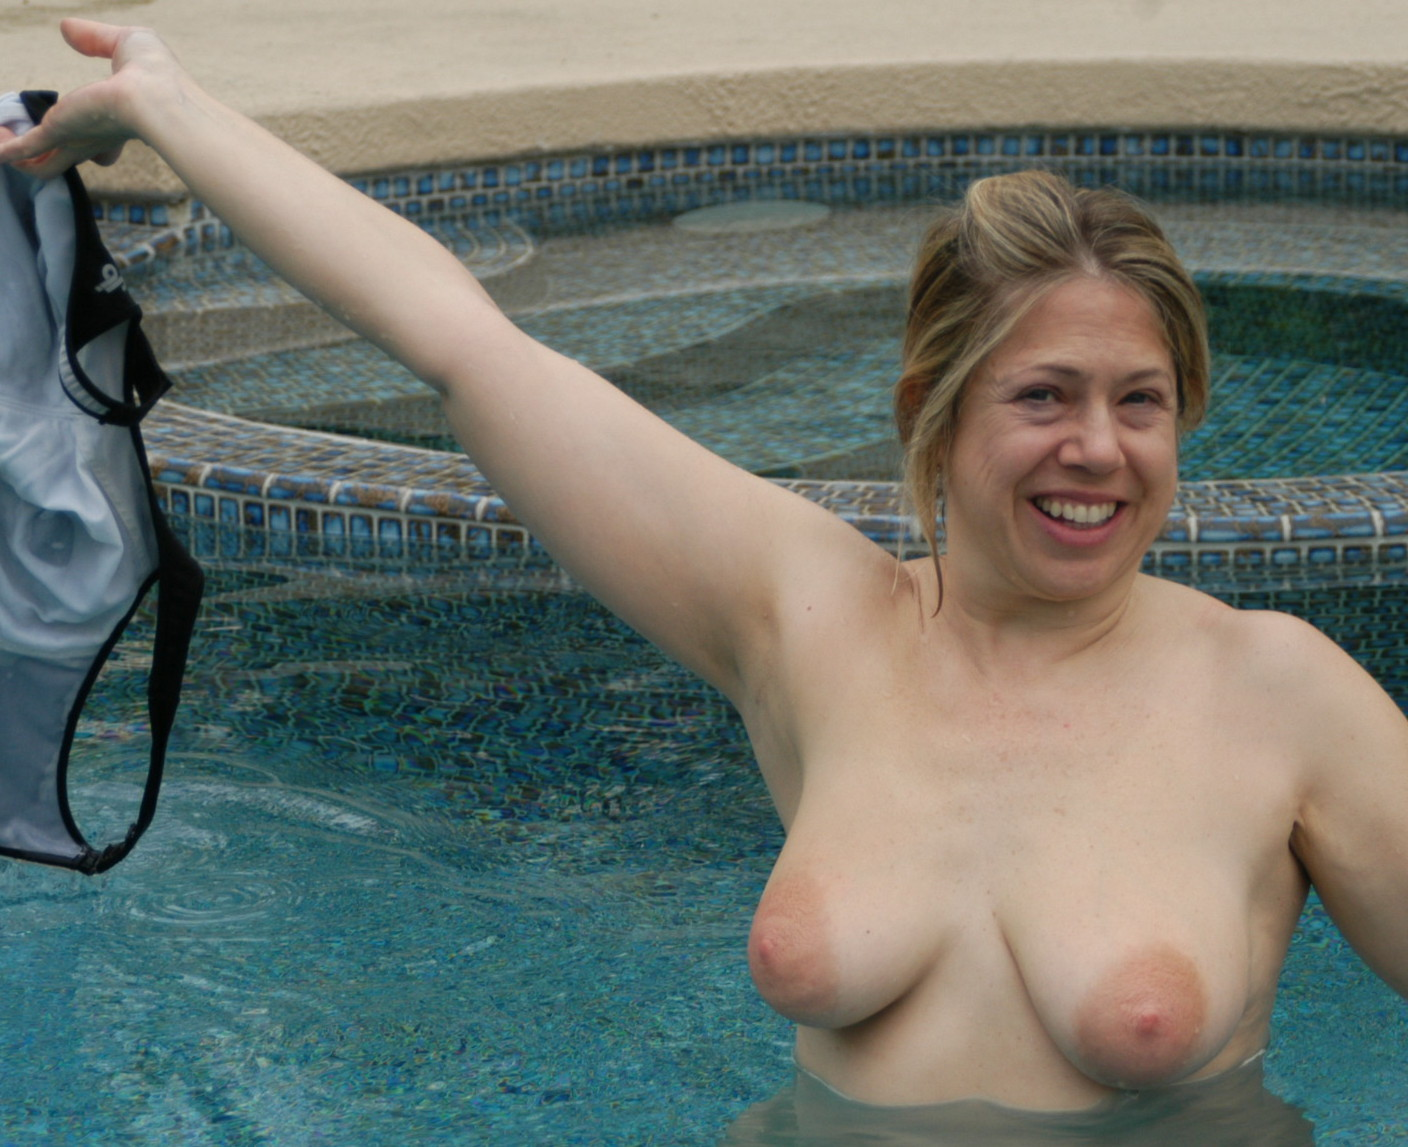 to vacation at clothing optional and nudist resorts september 2010